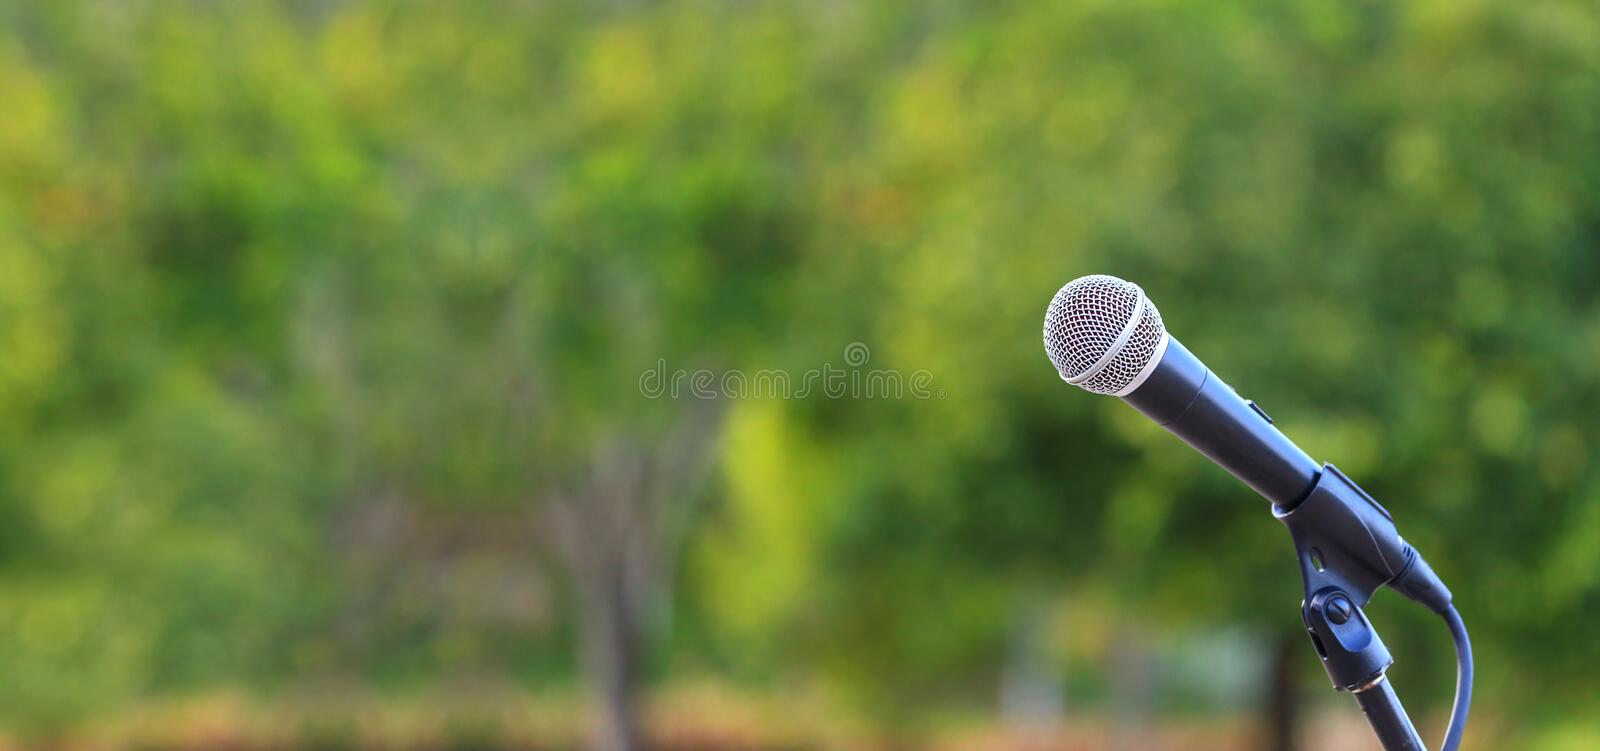 Microphone standing for speaker on the outdoor natural setting for music, concert and environmental awareness talk with copy space royalty free stock photography